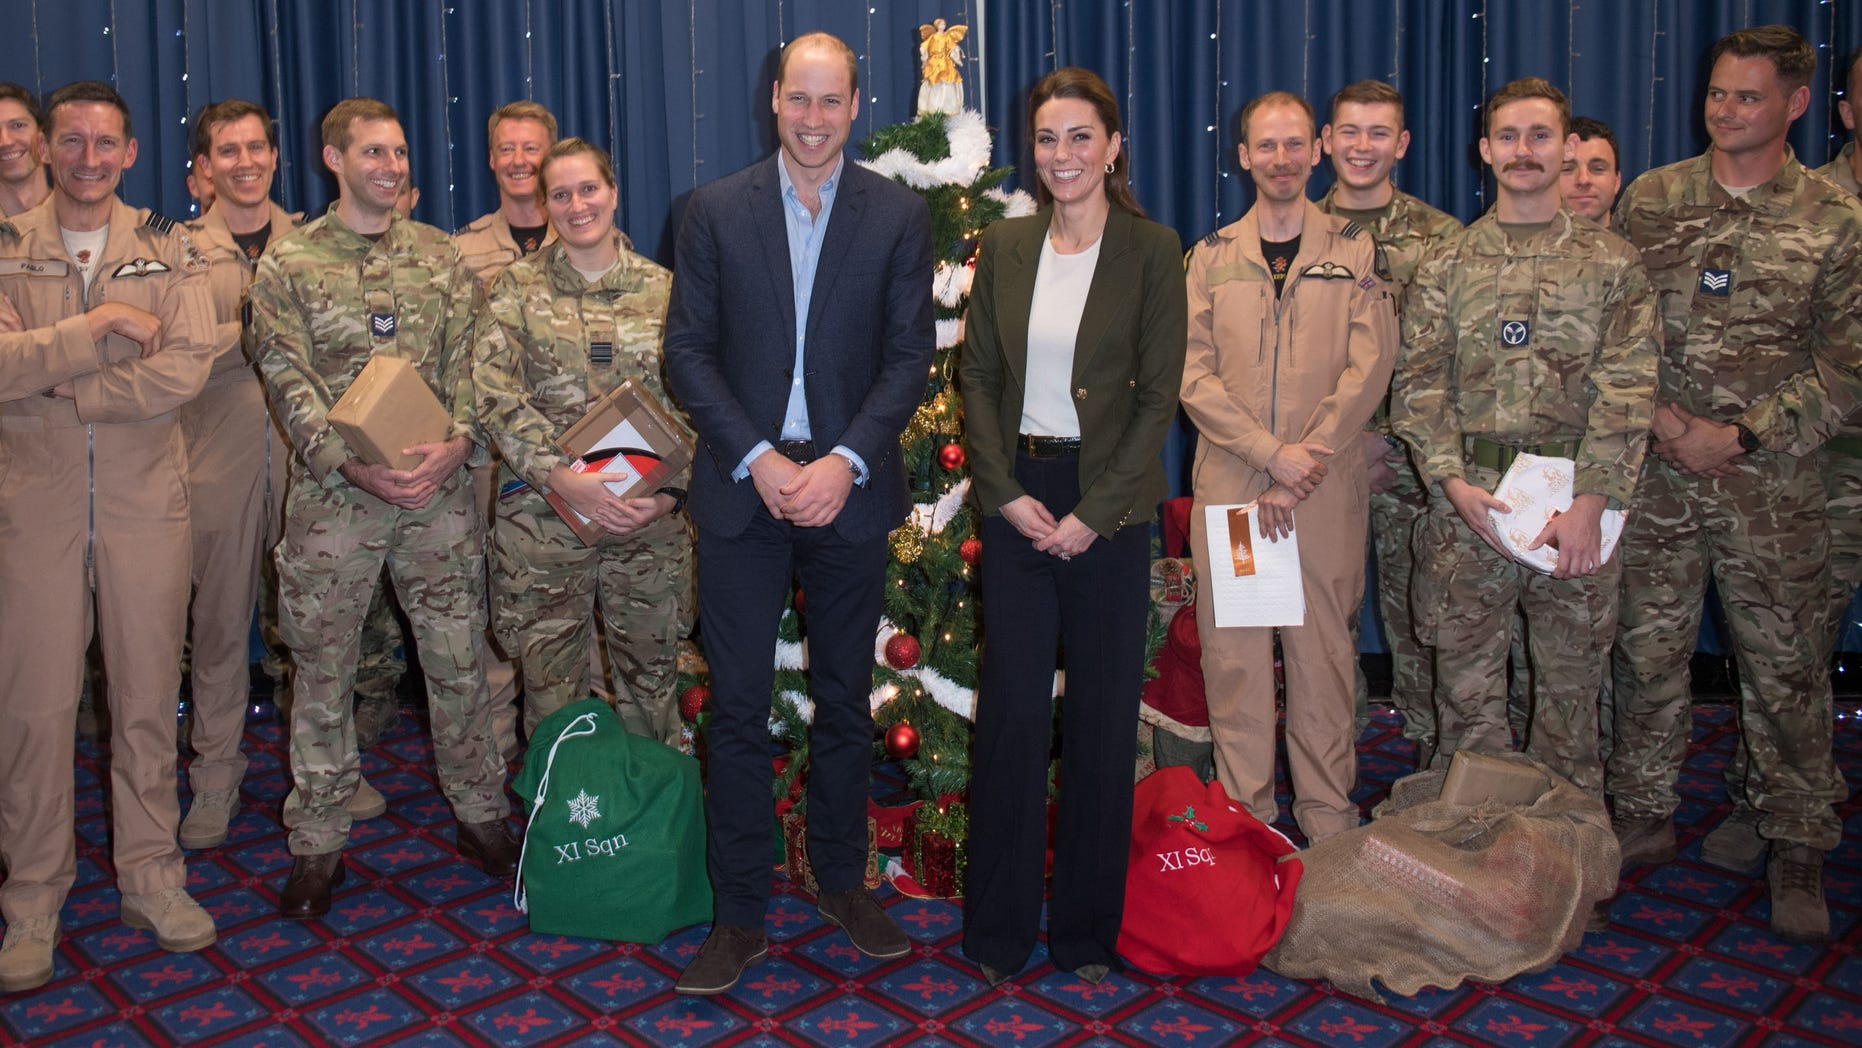 Prince William Likens Kate Middleton's Looks to Christmas Tree